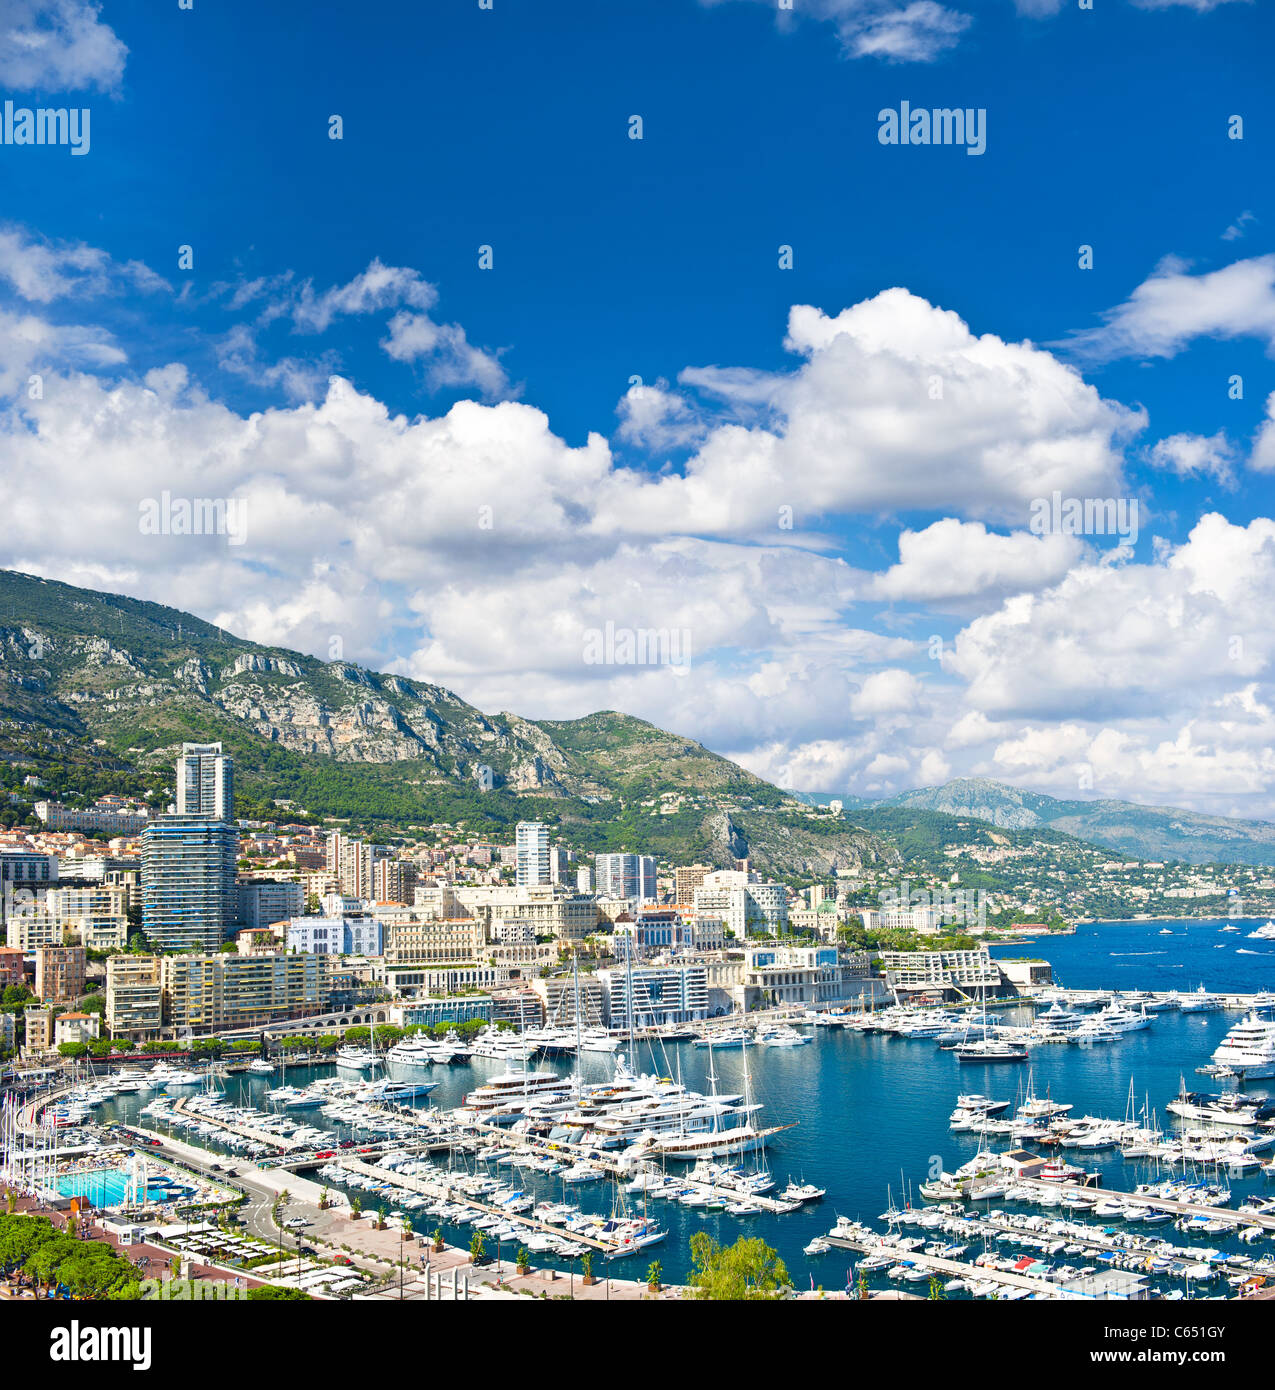 panoramic view of Monaco with the famous swimming pool and harbour - Stock Image